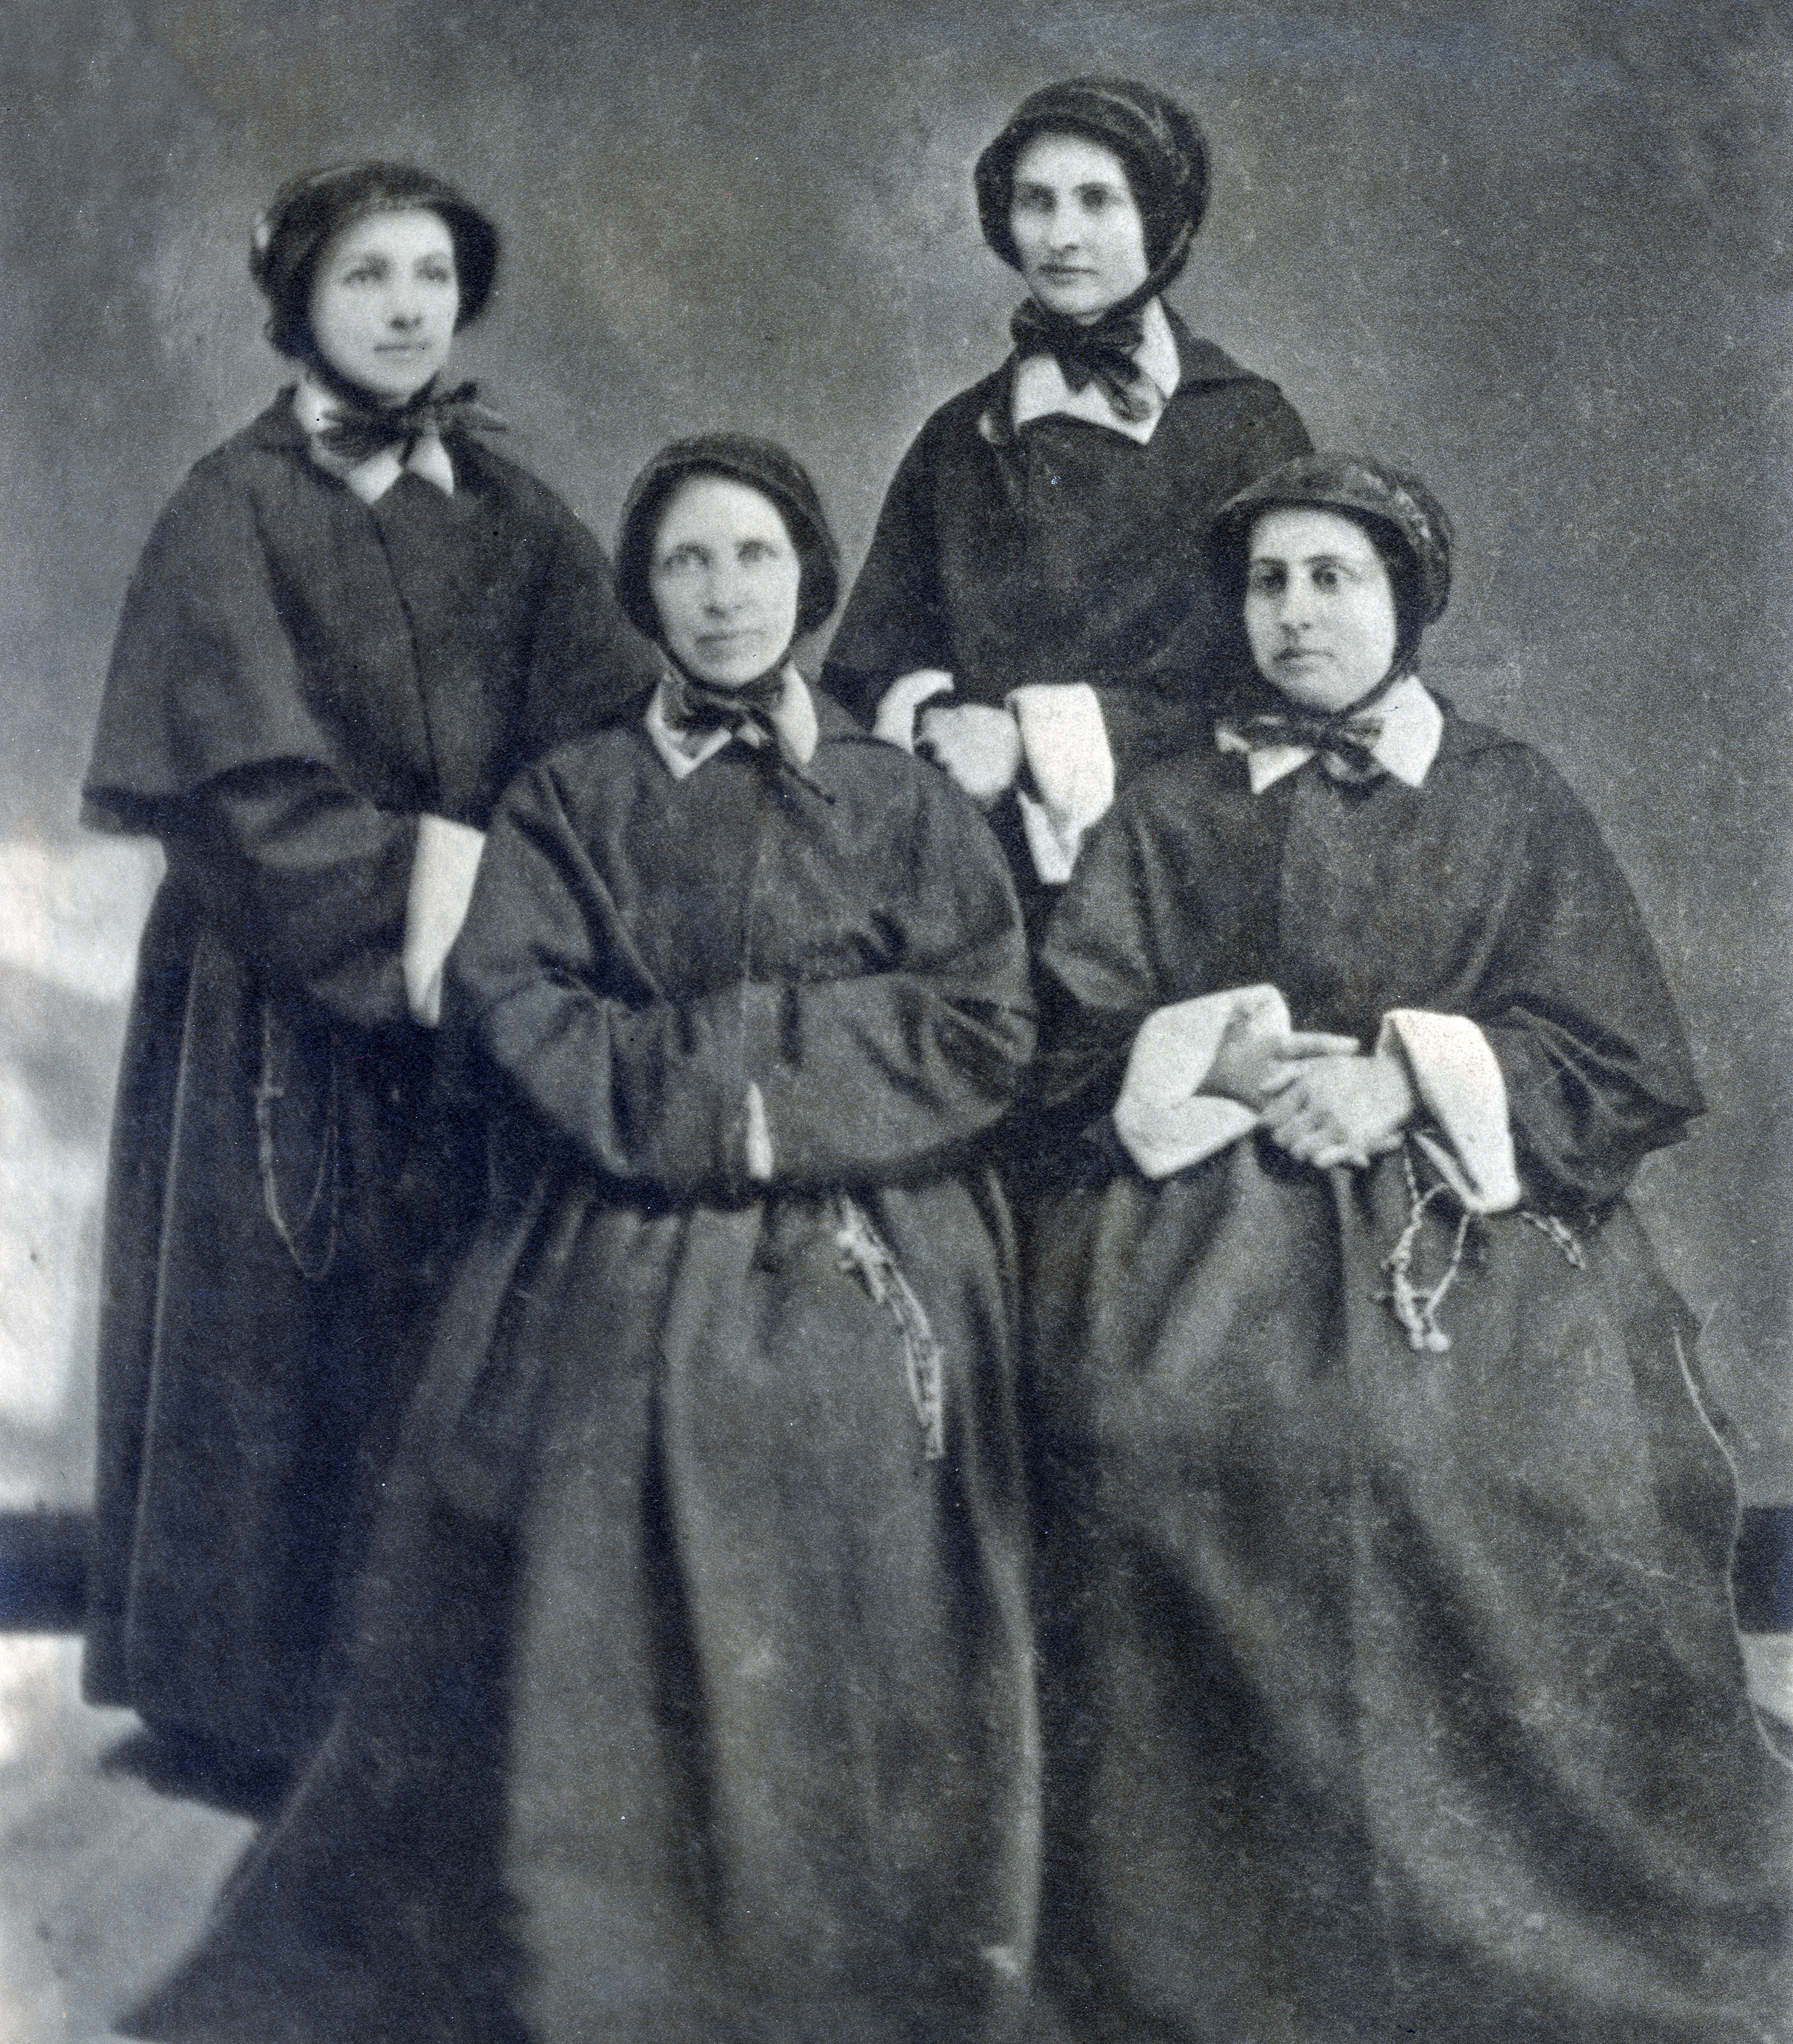 Sisters of Charity in Trinidad, Colorado